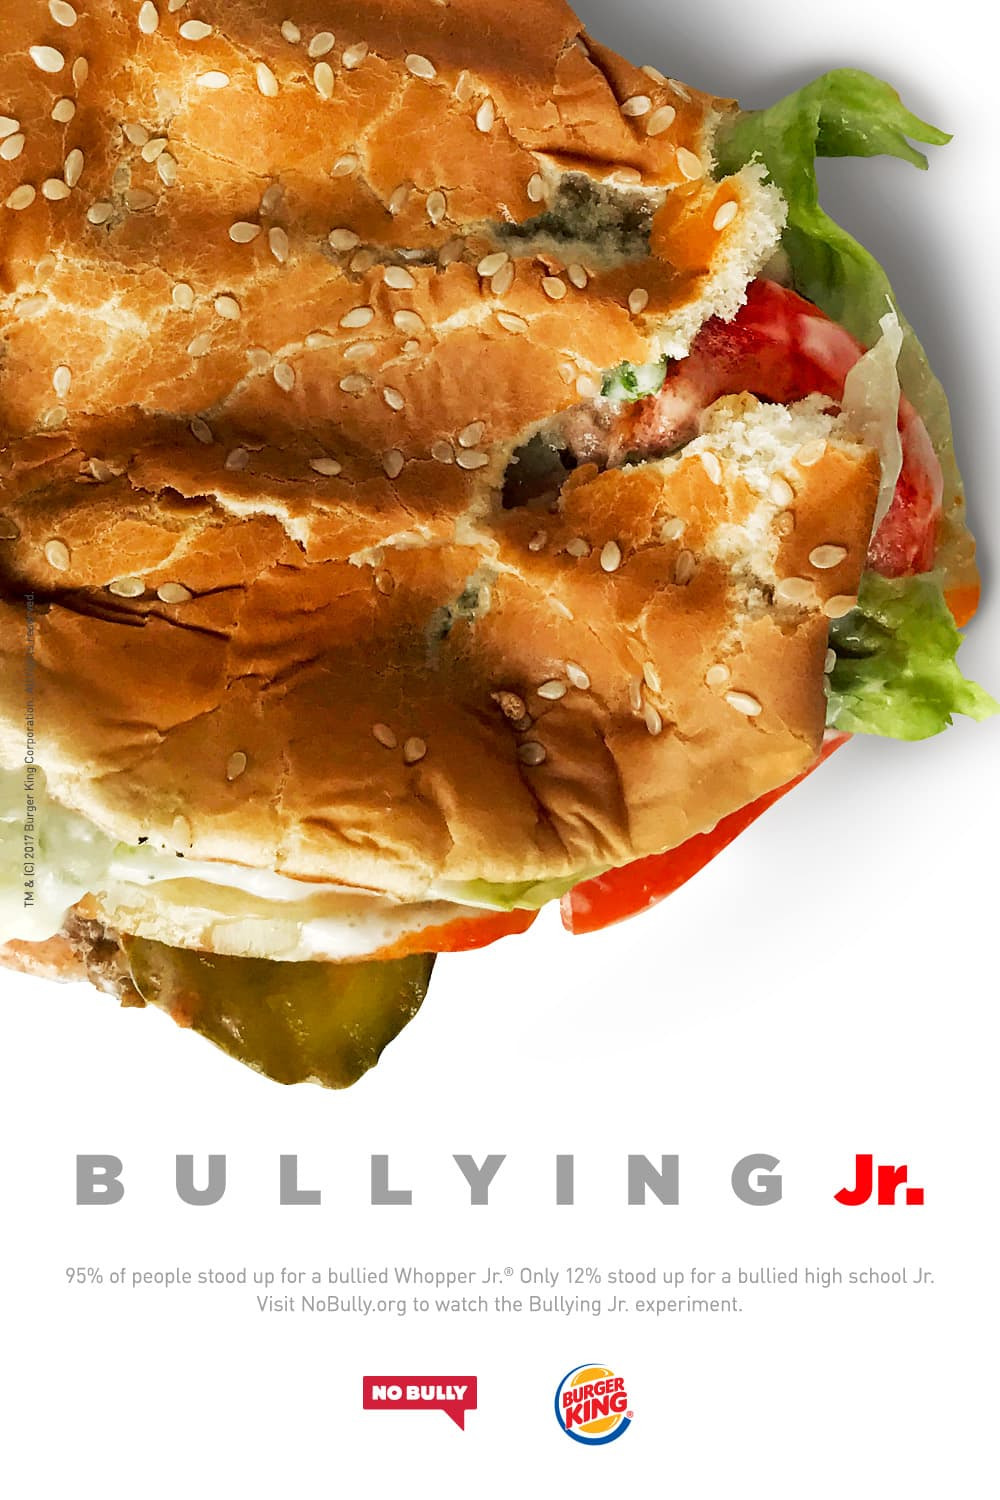 Burger King Bullying Jr